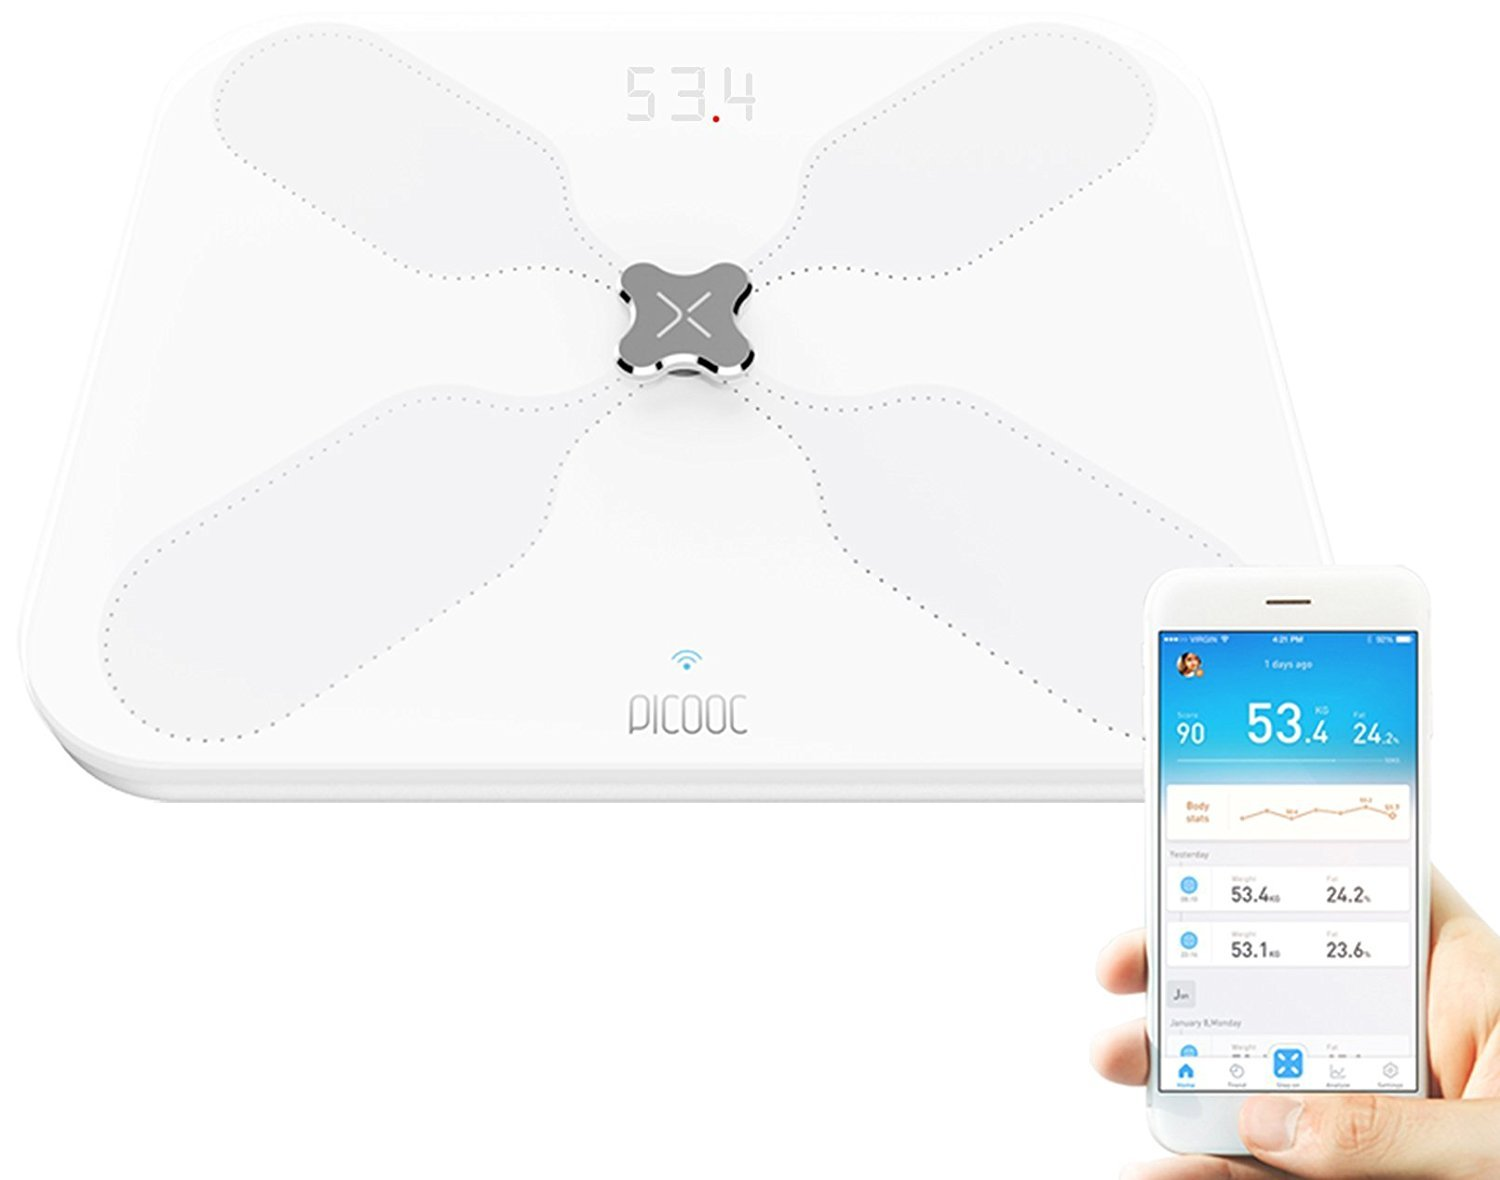 Picooc Wi-Fi and Bluetooth Smart Digital Body Weight Scale, White